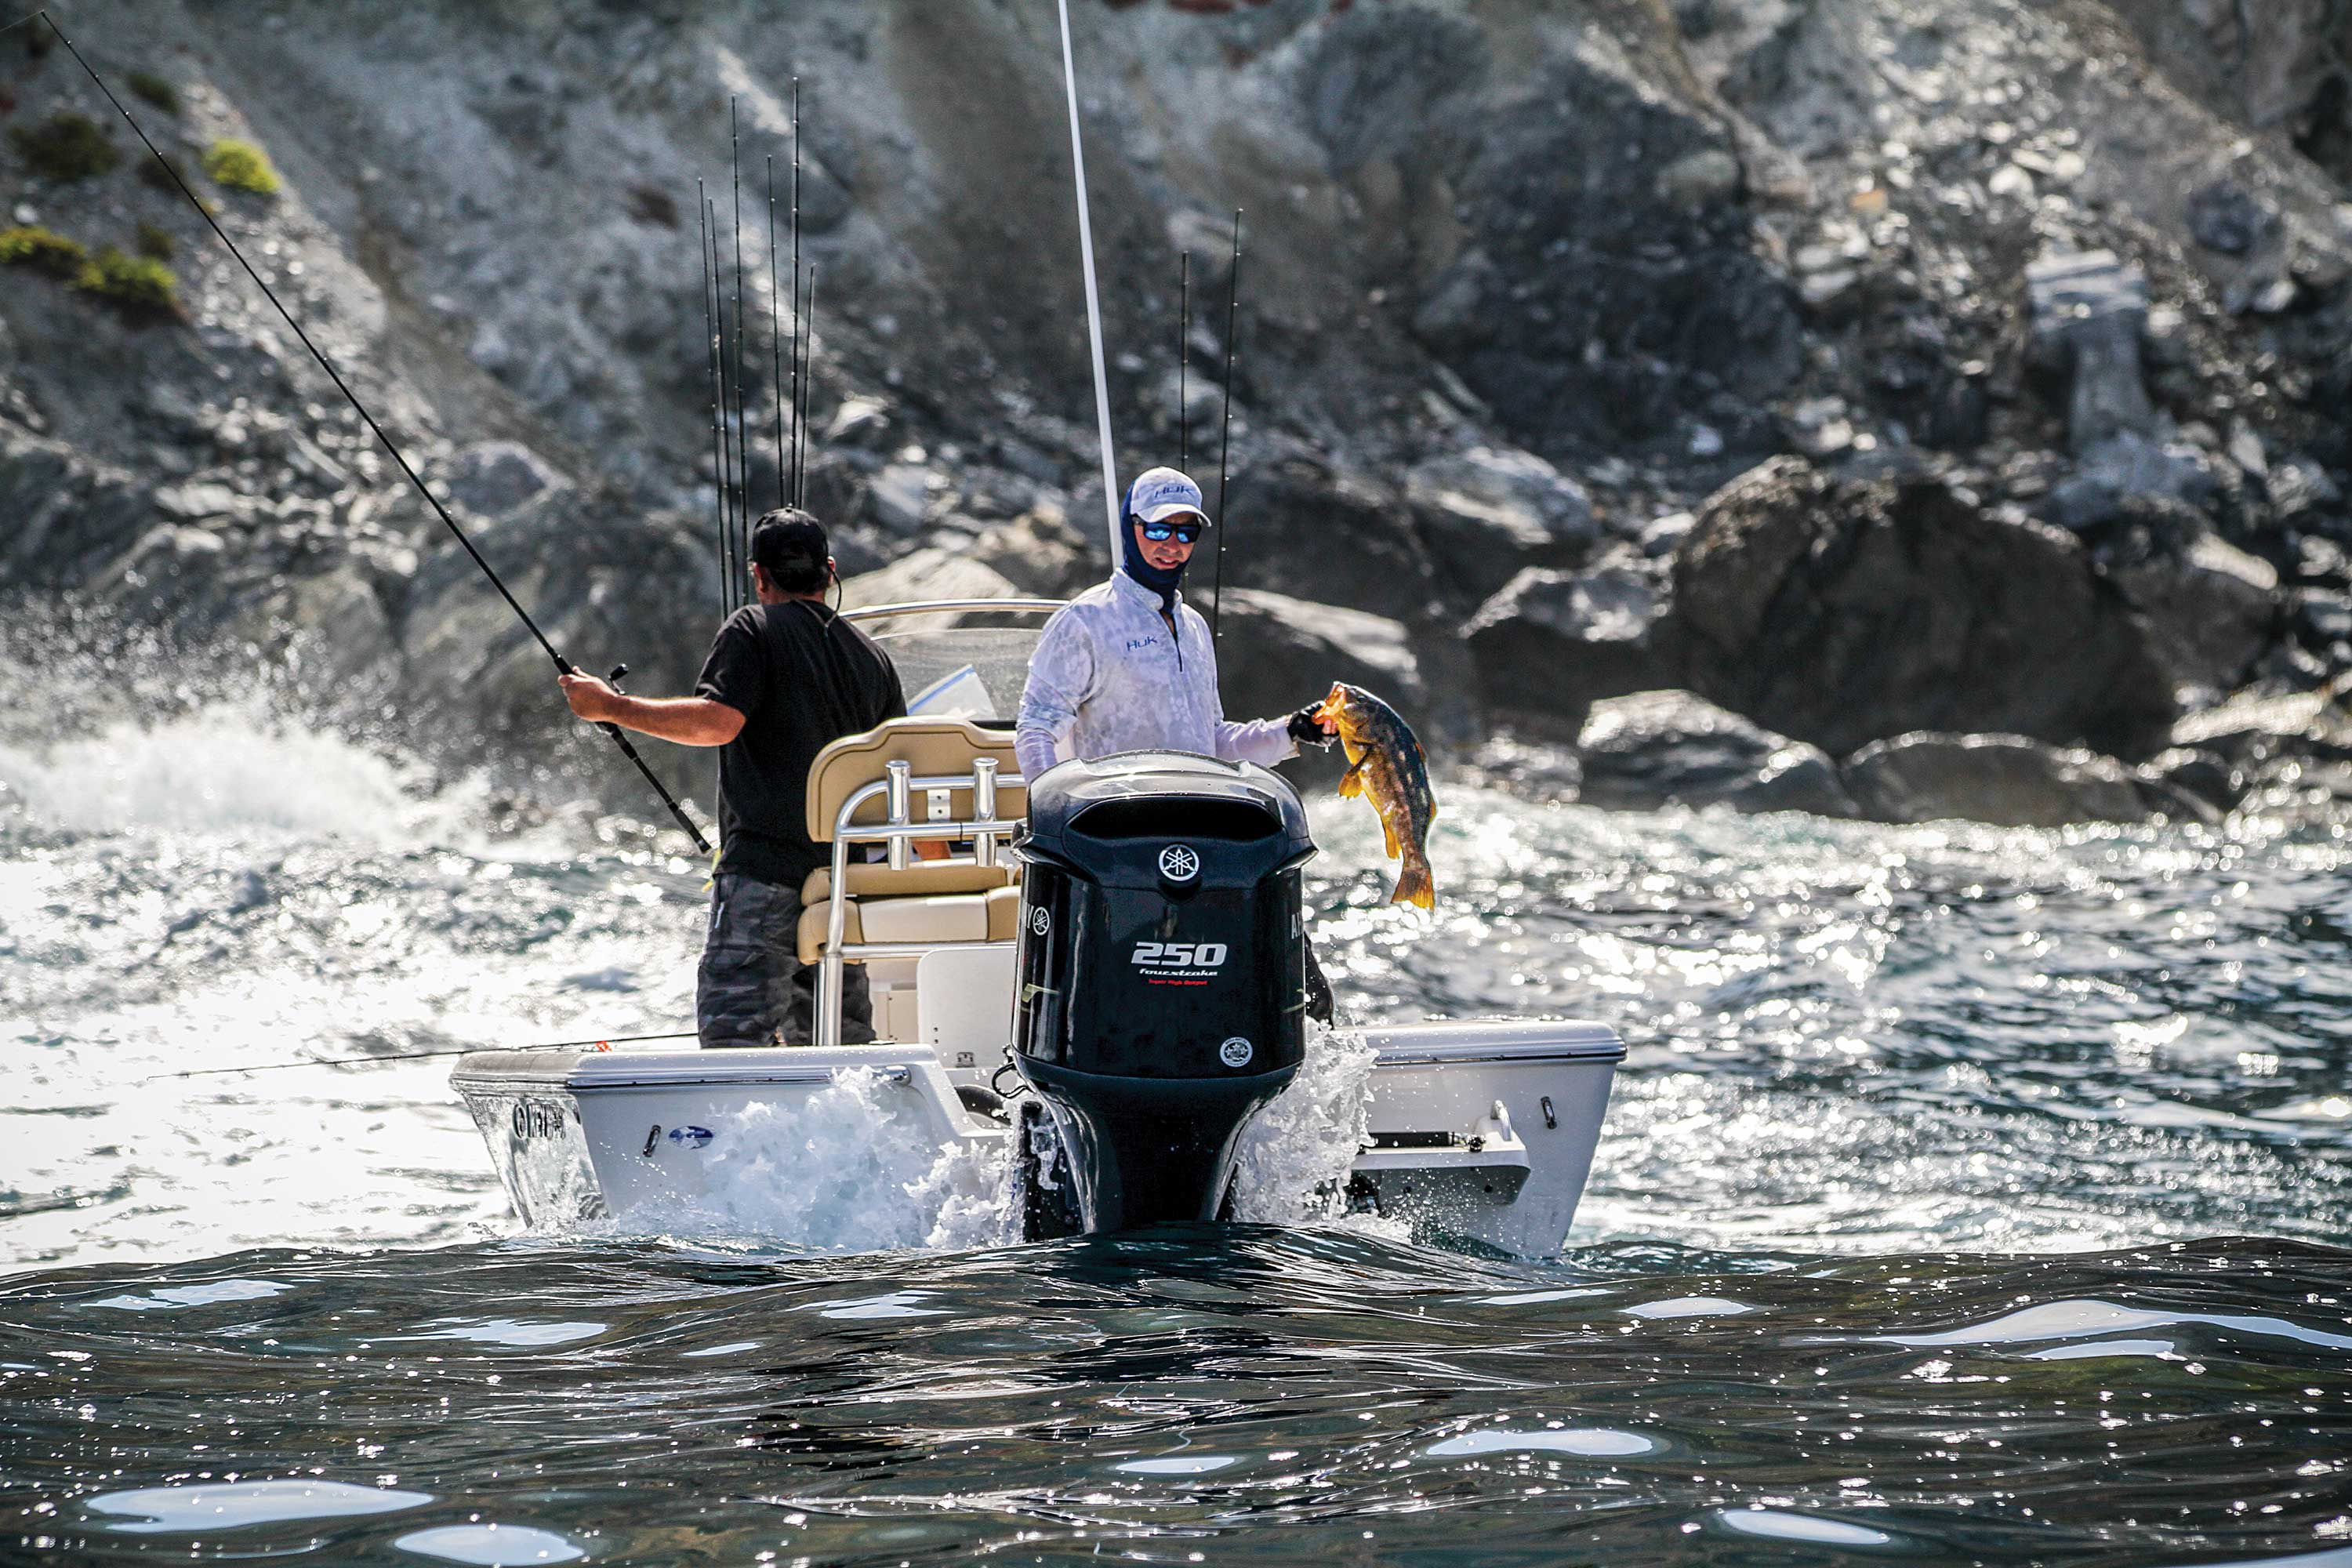 Bay boats let anglers quickly reach SoCal outer islands to fish for calico bass and other species.